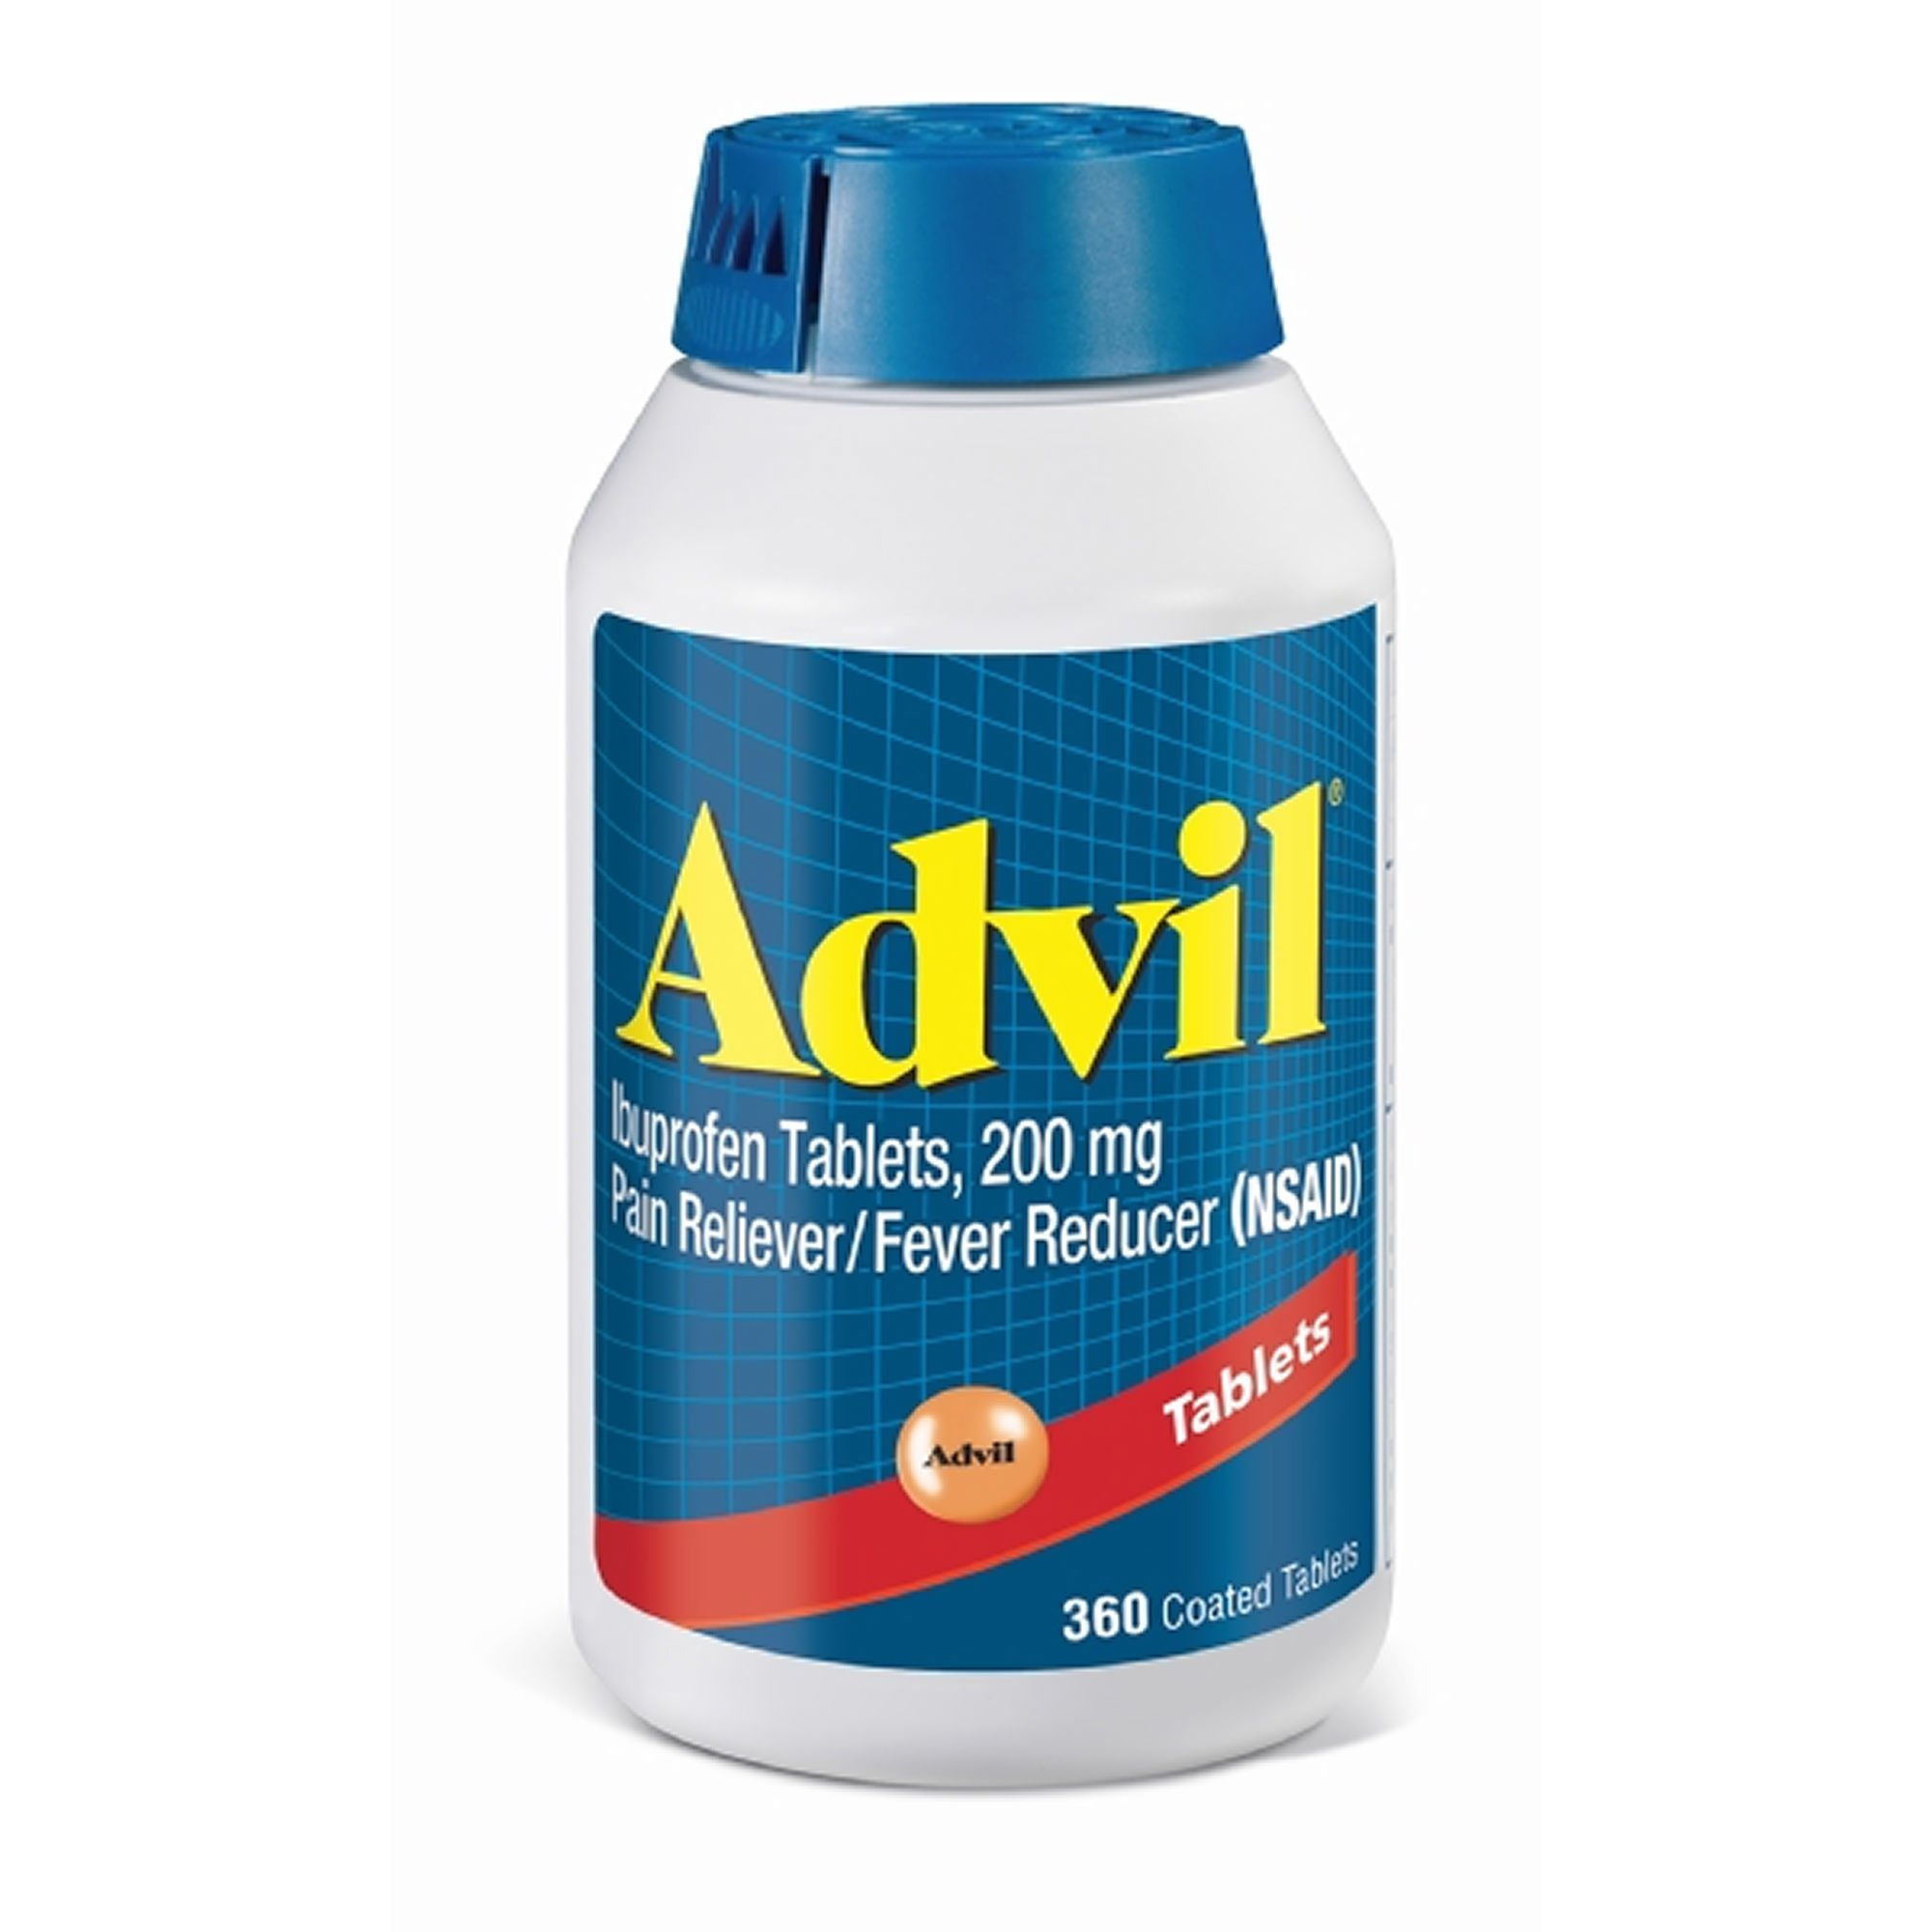 Advil 200mg Tablets, 360 ct. (pack of 6) by Advil